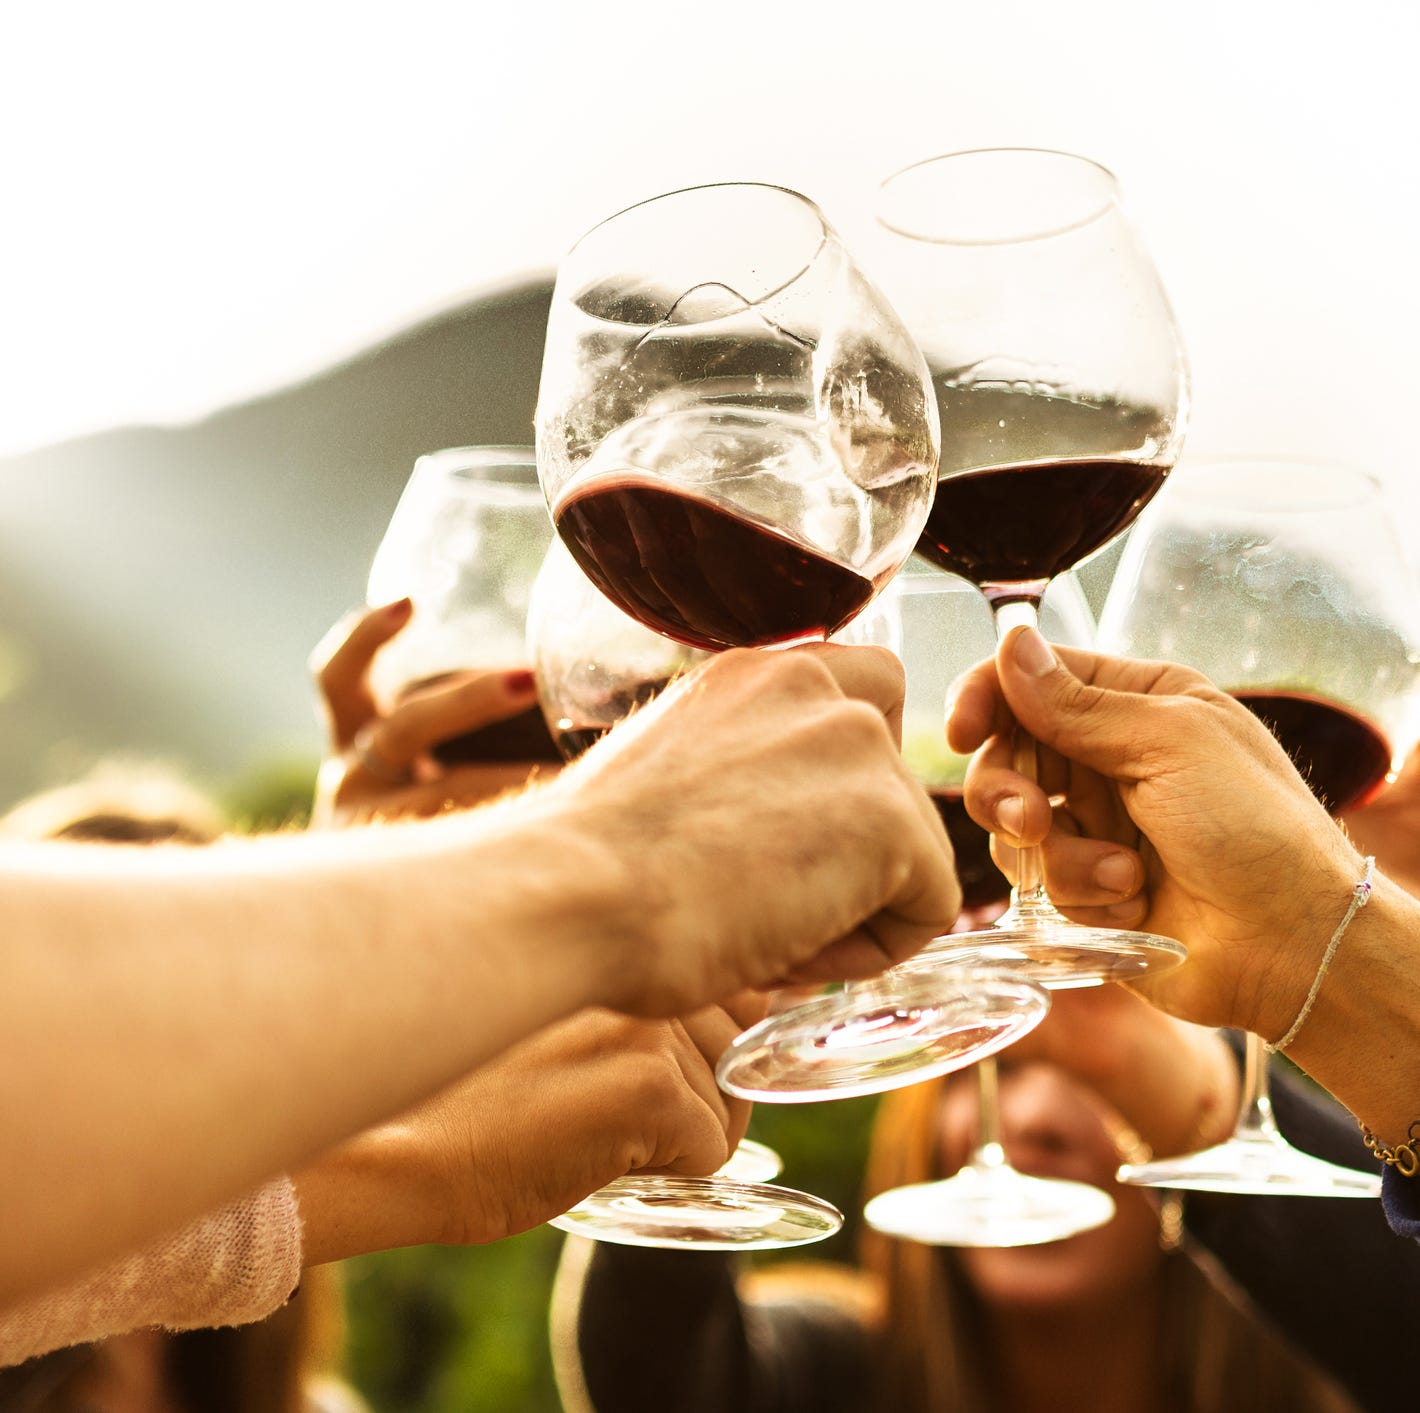 Love trivia? Here are wine facts to impress your friends with